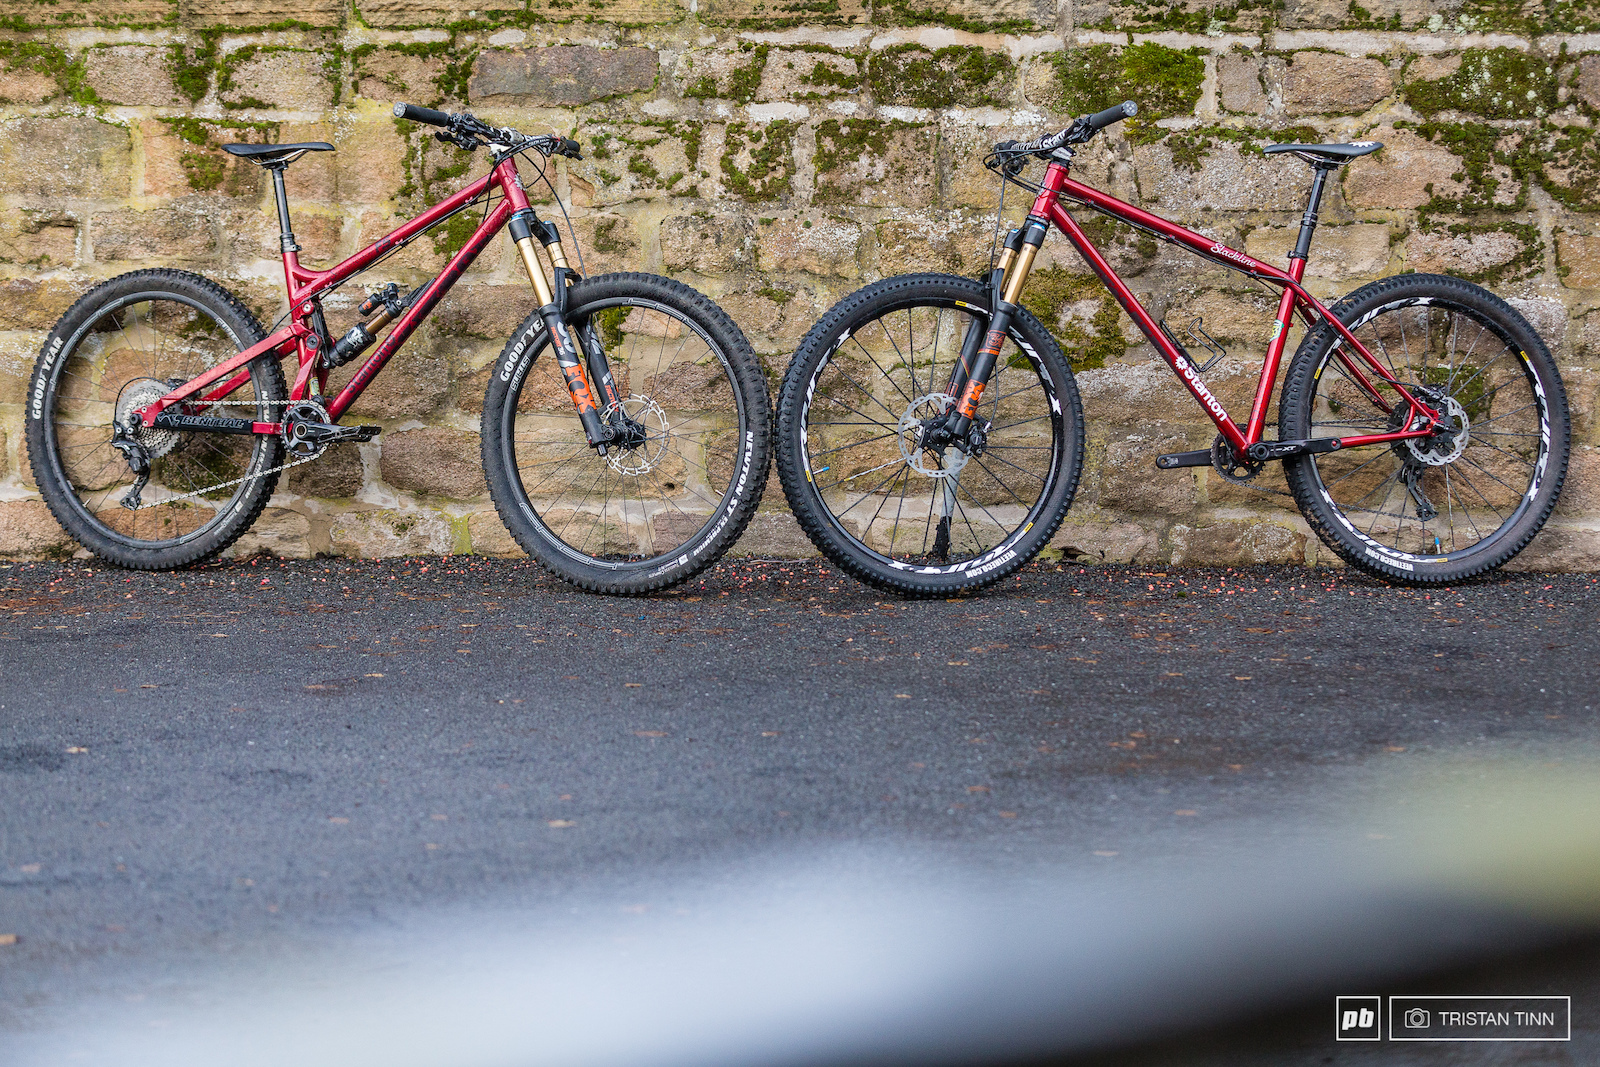 A built up second gen Switchback hardtail head to head with the Switchback FS